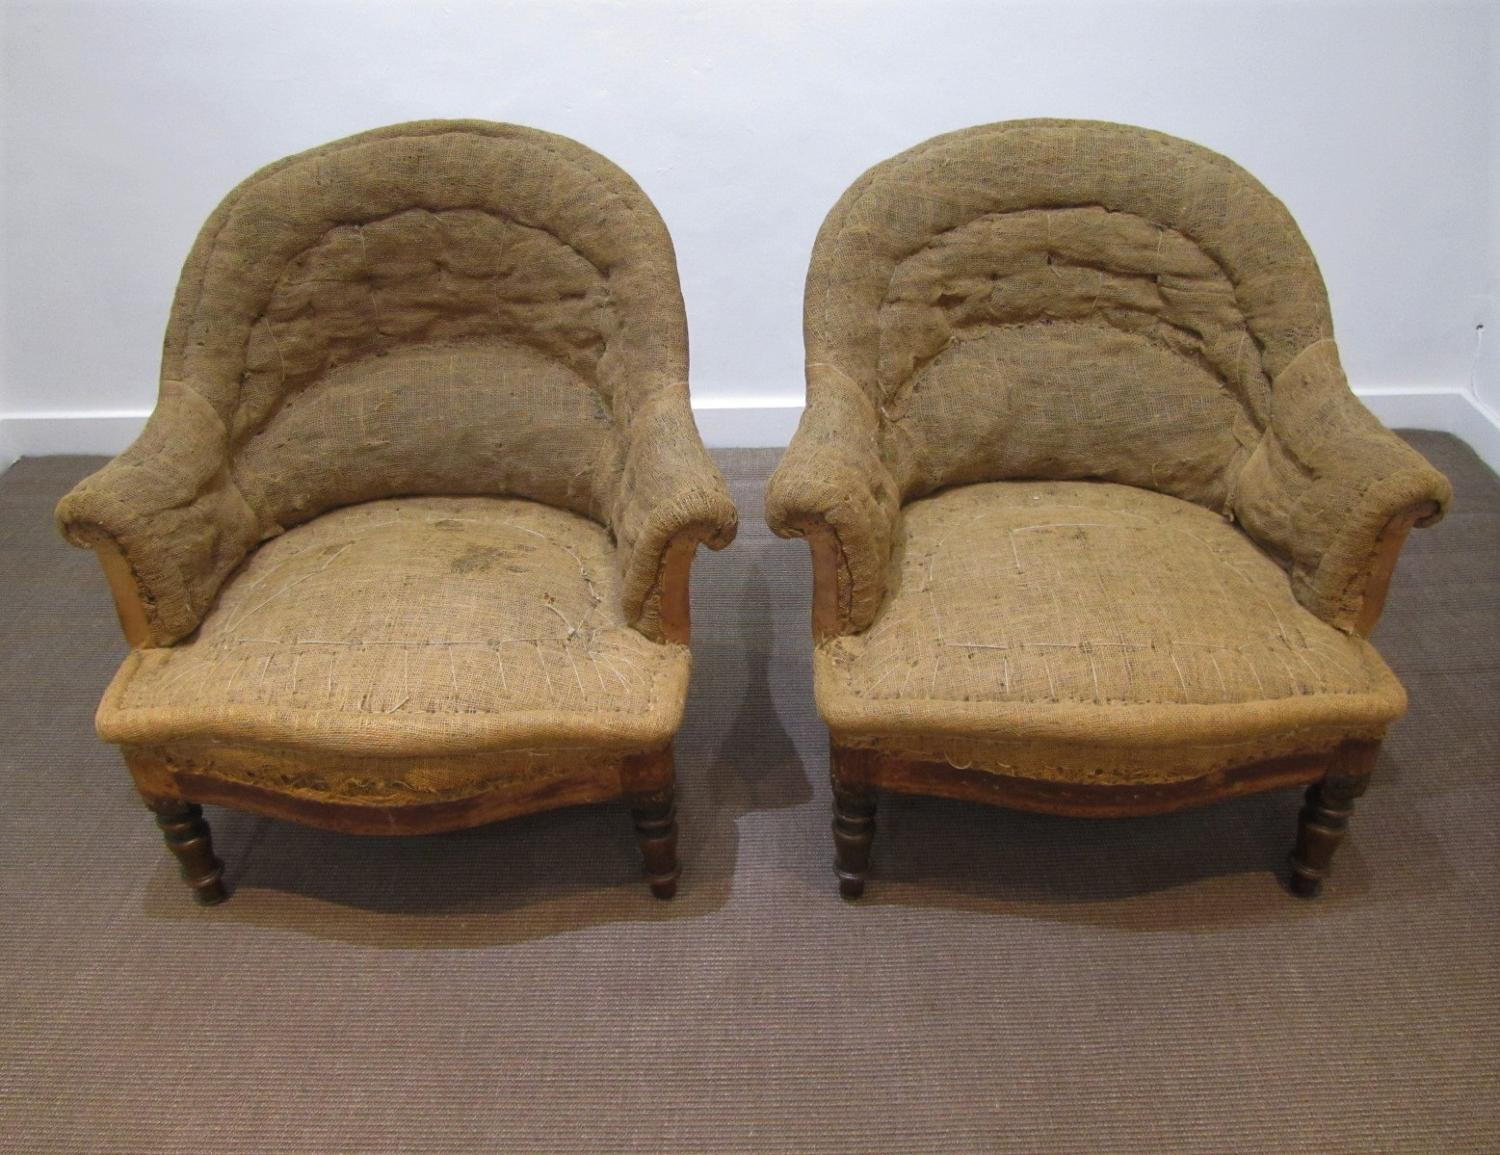 A pair of Napoleon III crapaud chairs